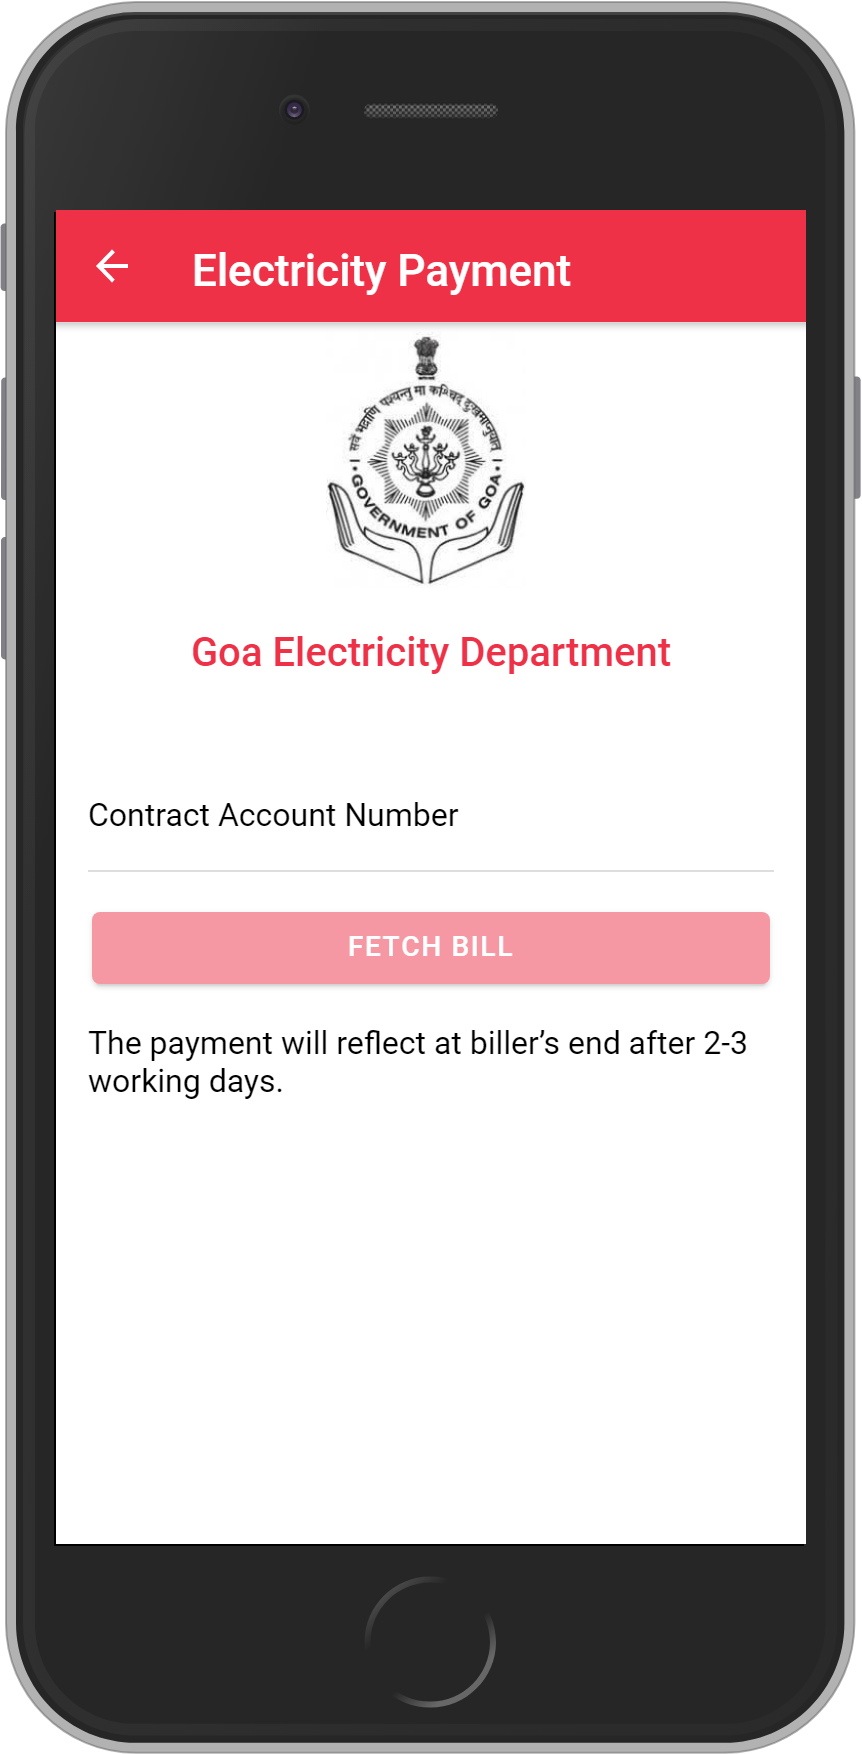 Get UNLIMITED <b>0.1%</b> CASHBACK on Goa Electricity Department Bill Payment.